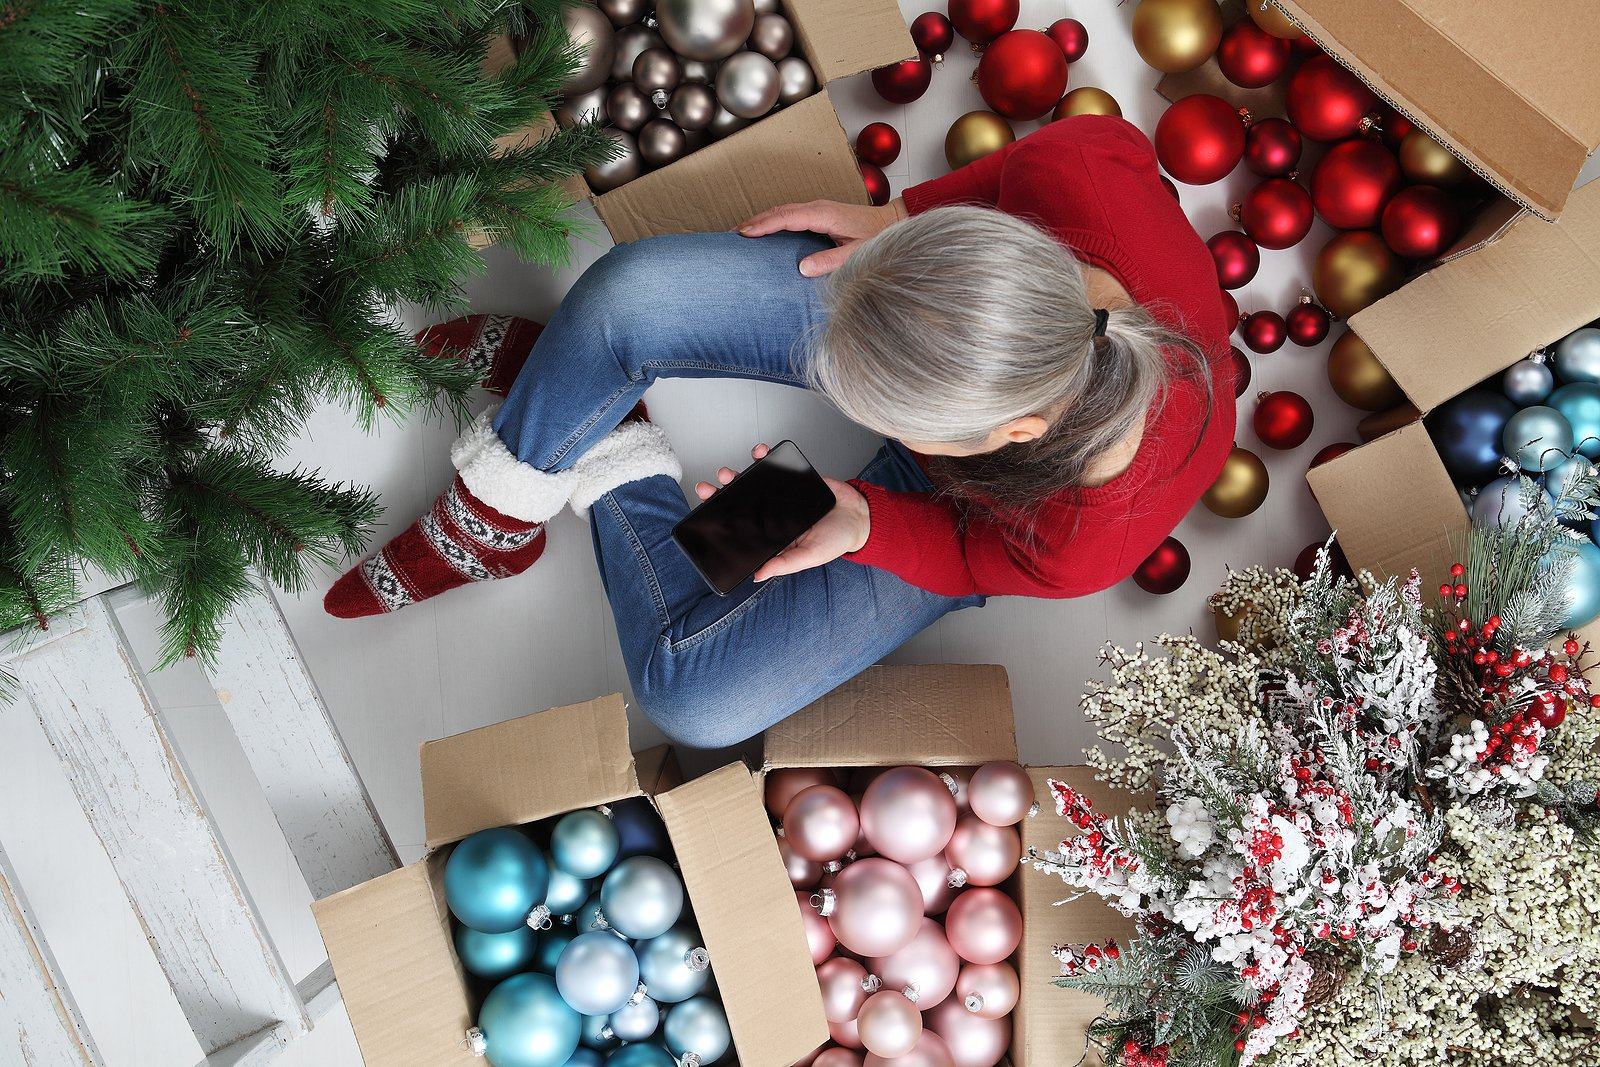 How to Store Christmas Decorations